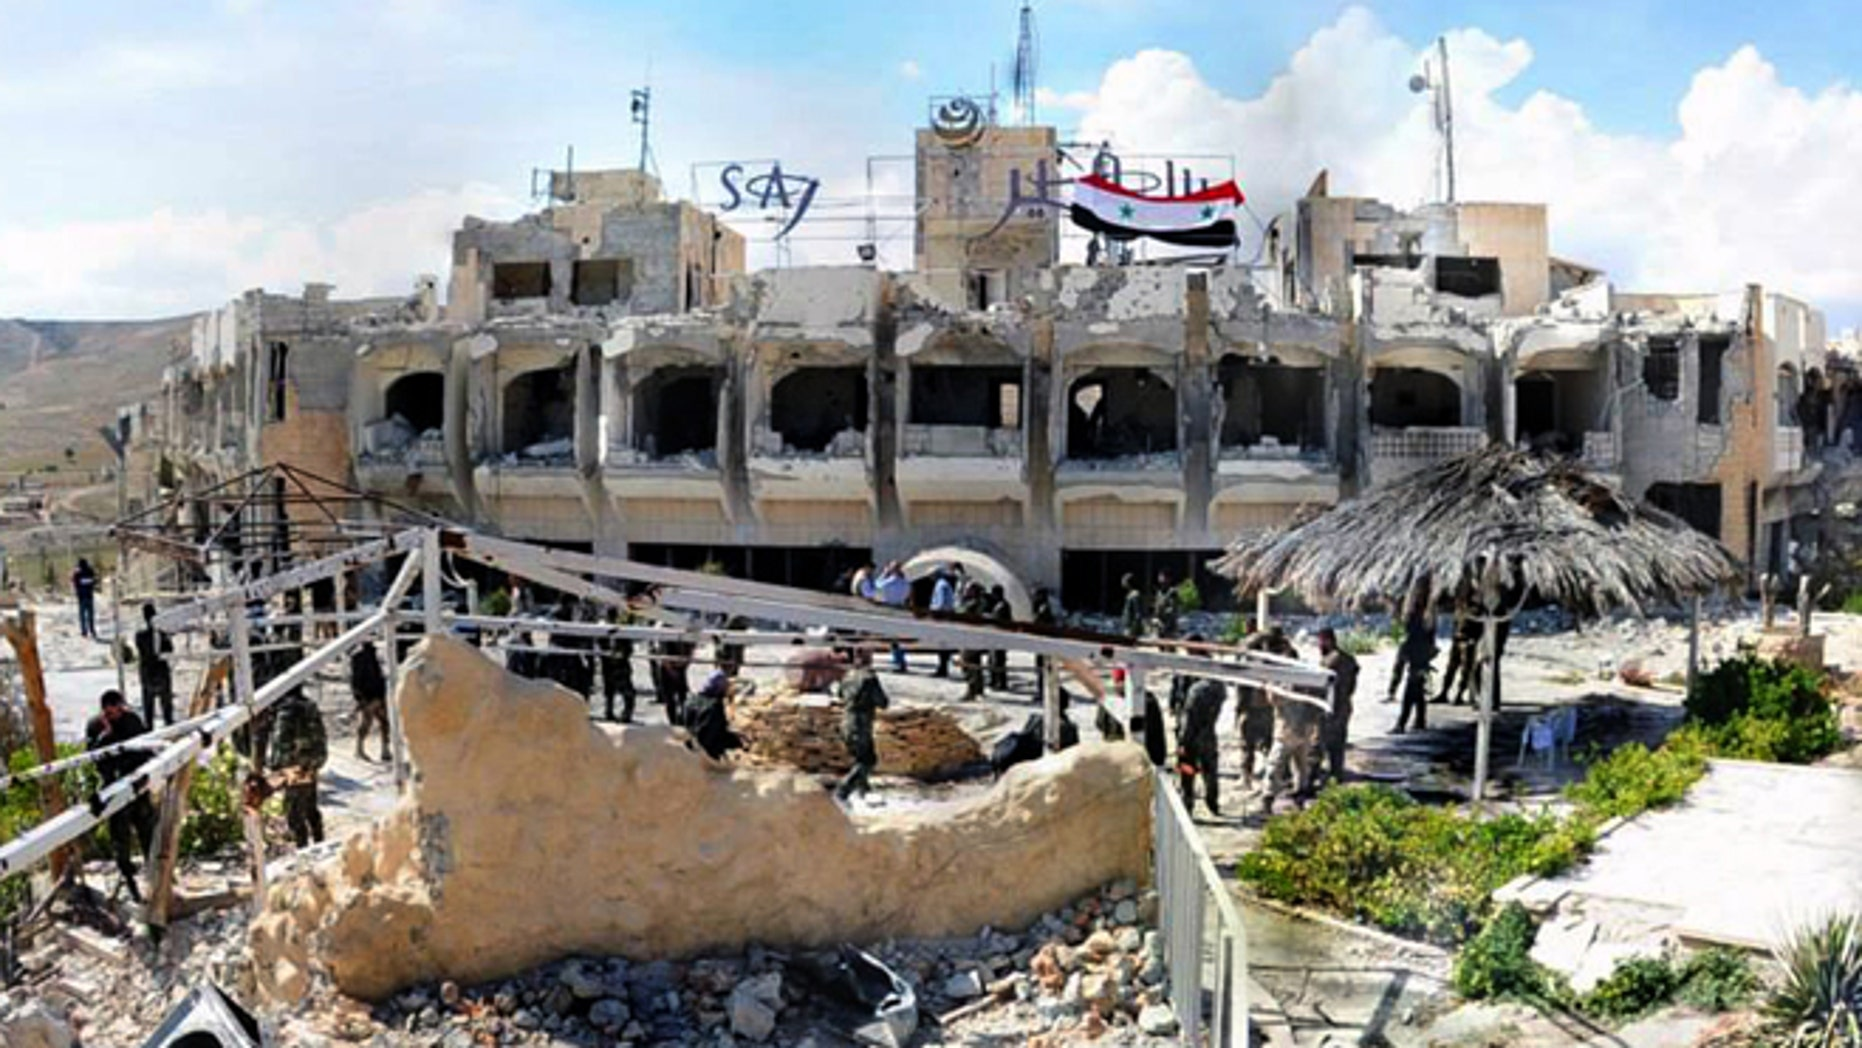 April 14, 2014: This photo, released by the Syrian official news agency SANA, shows Syrian government soldiers gathering outside a damaged hotel that Syrian rebels had been using, in Maaloula village, northeast of the capital Damascus, Syria.